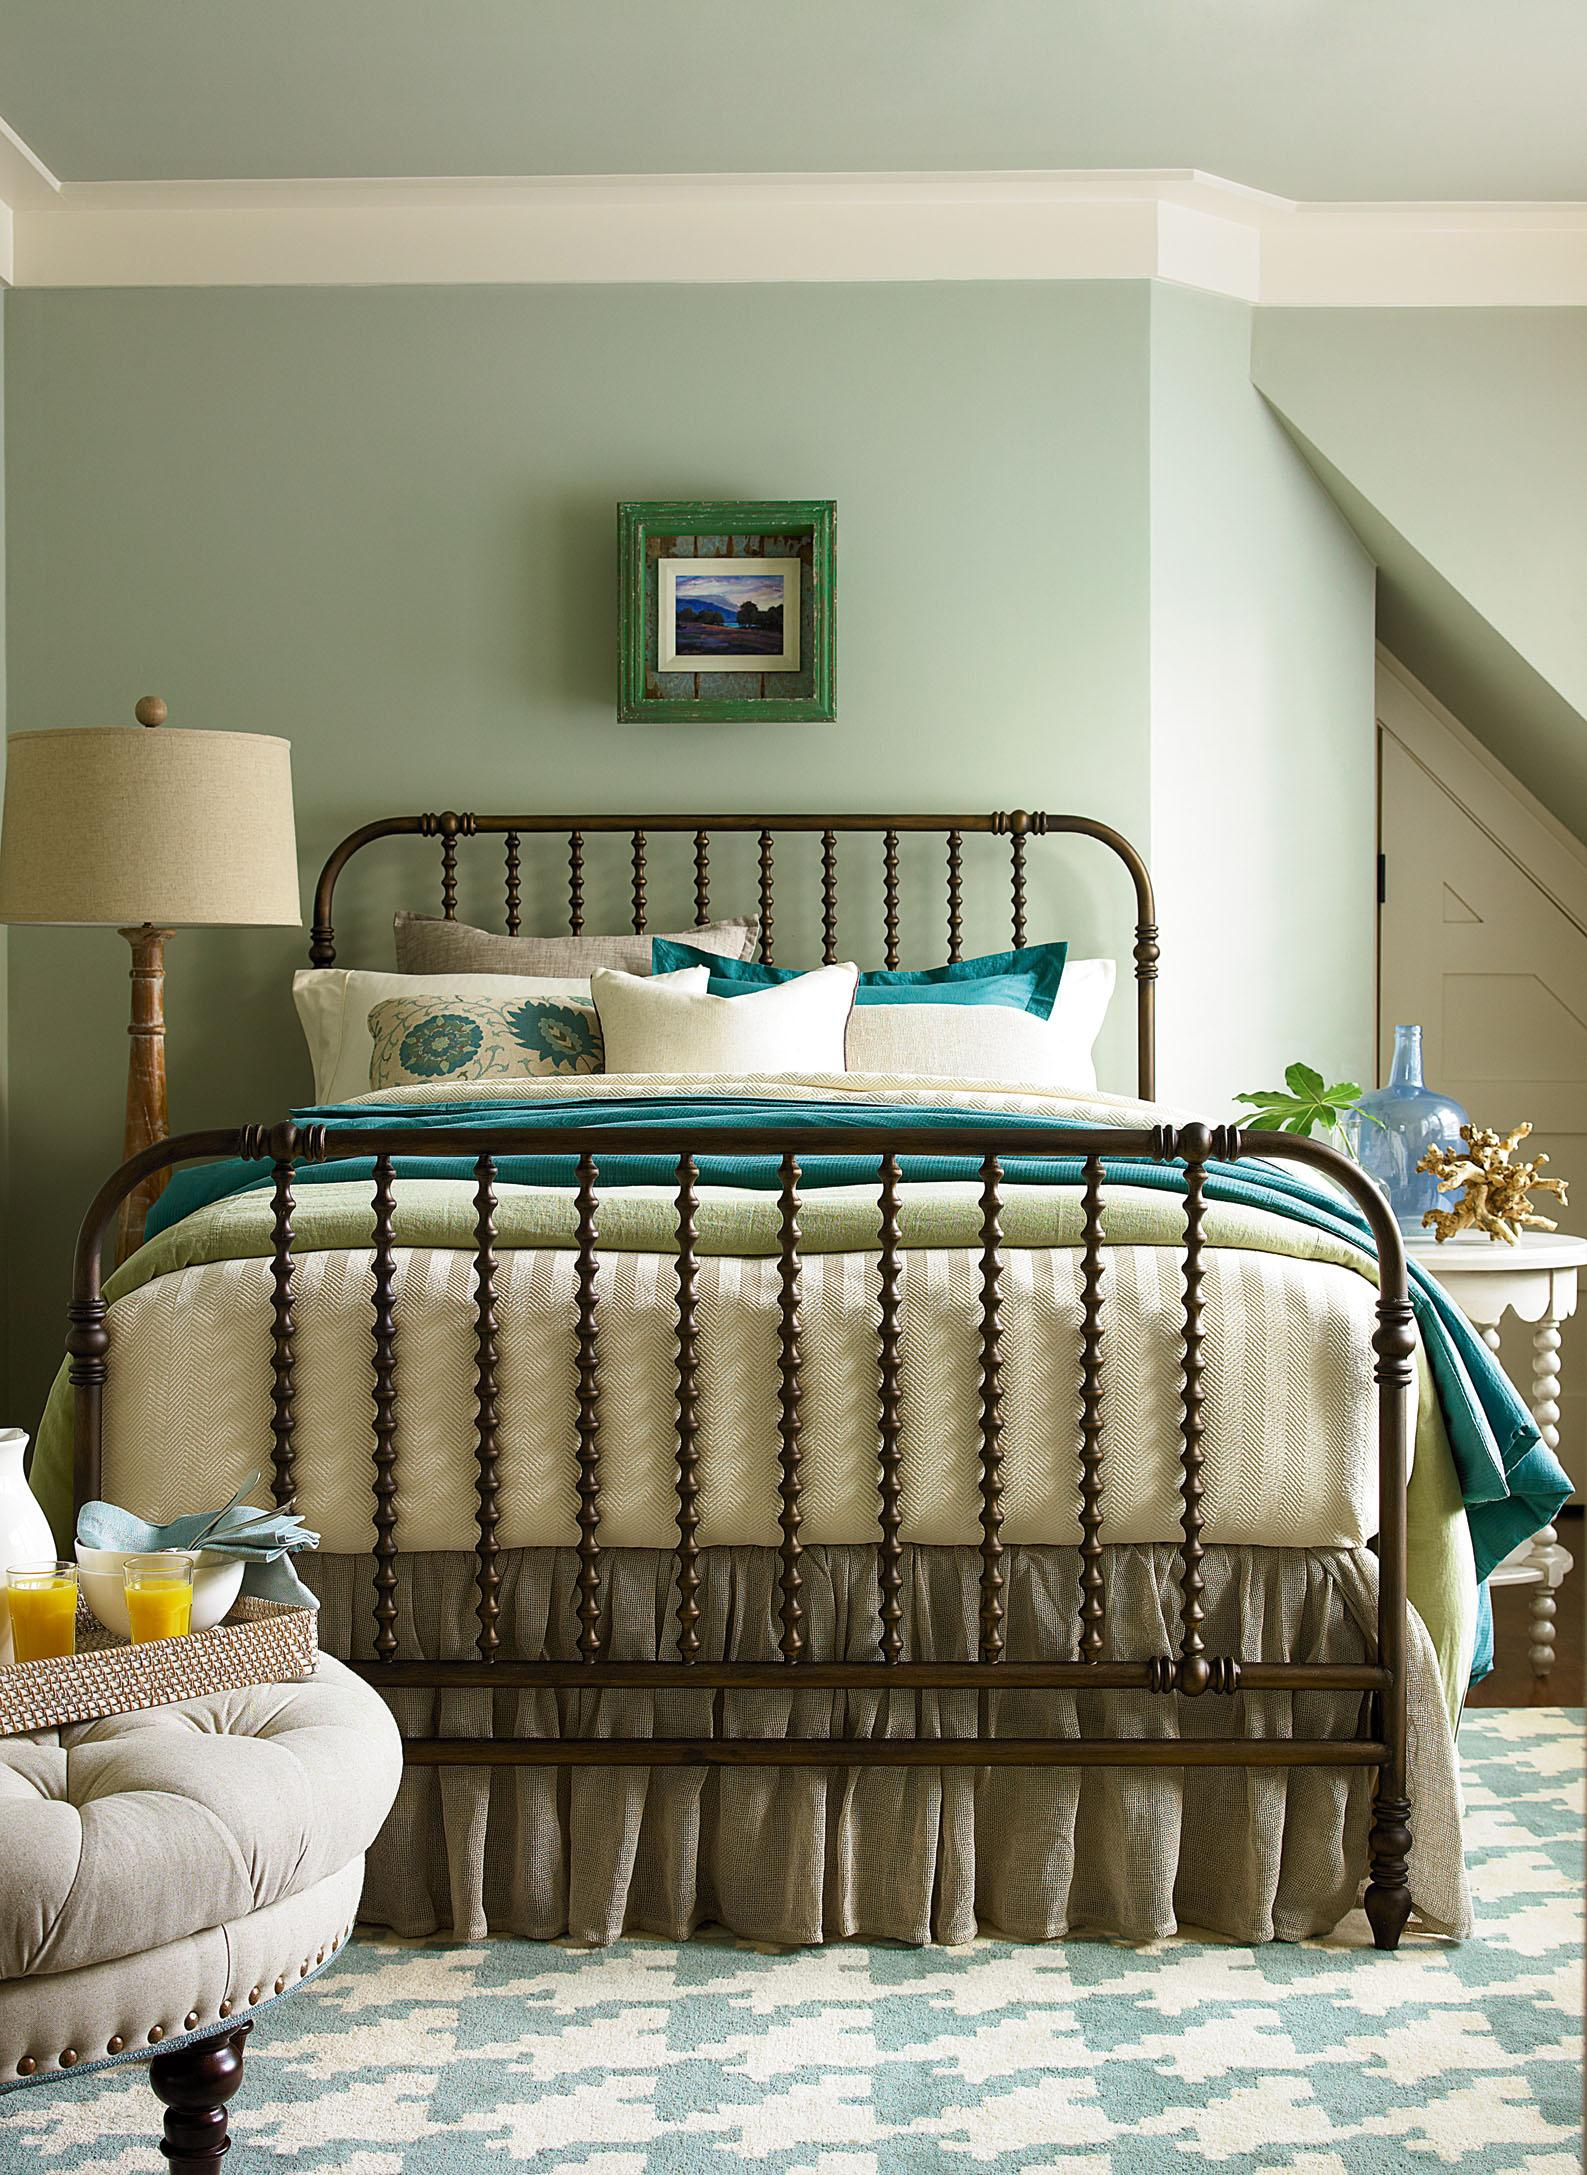 Paula Deen Bedroom Furniture Collection Paula Deen By Universal River House The Guest Room Queen Size Bed